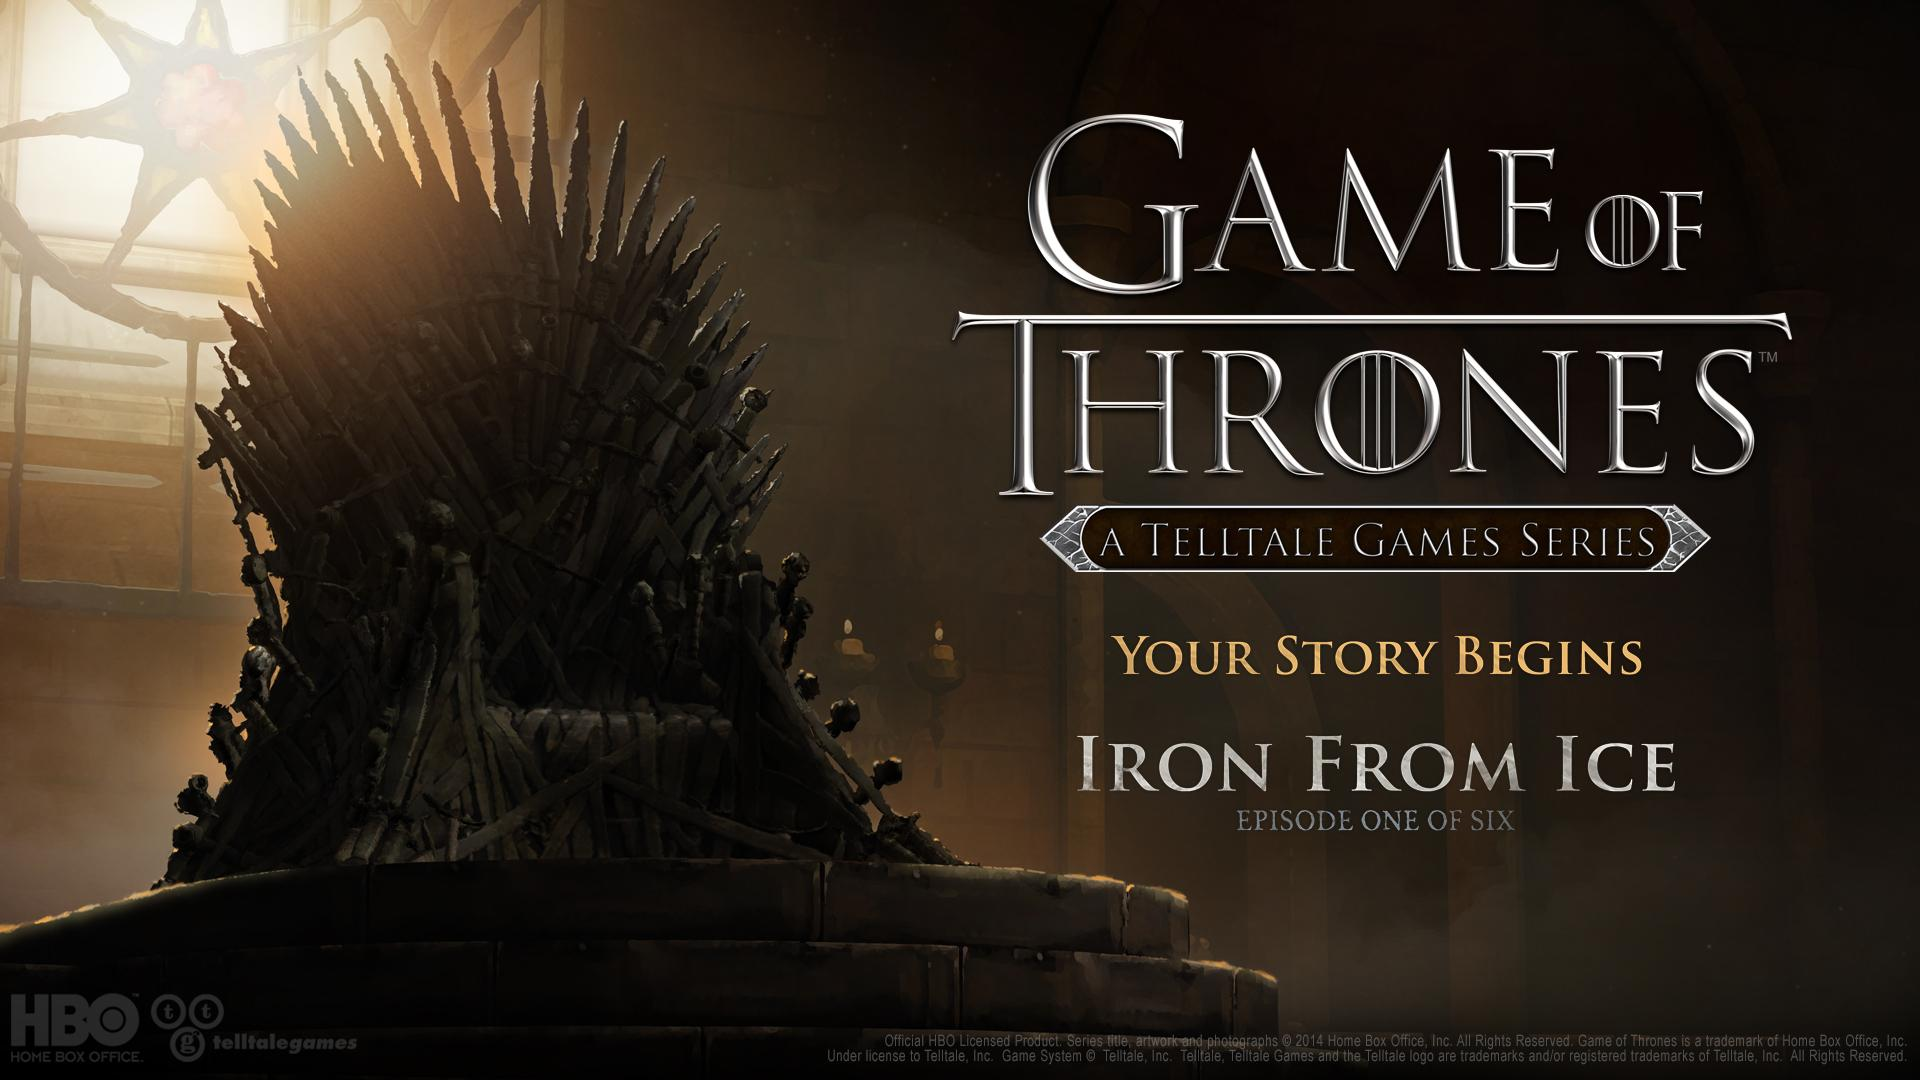 Game of Thrones First Season Has Six Episodes Launch Announcement